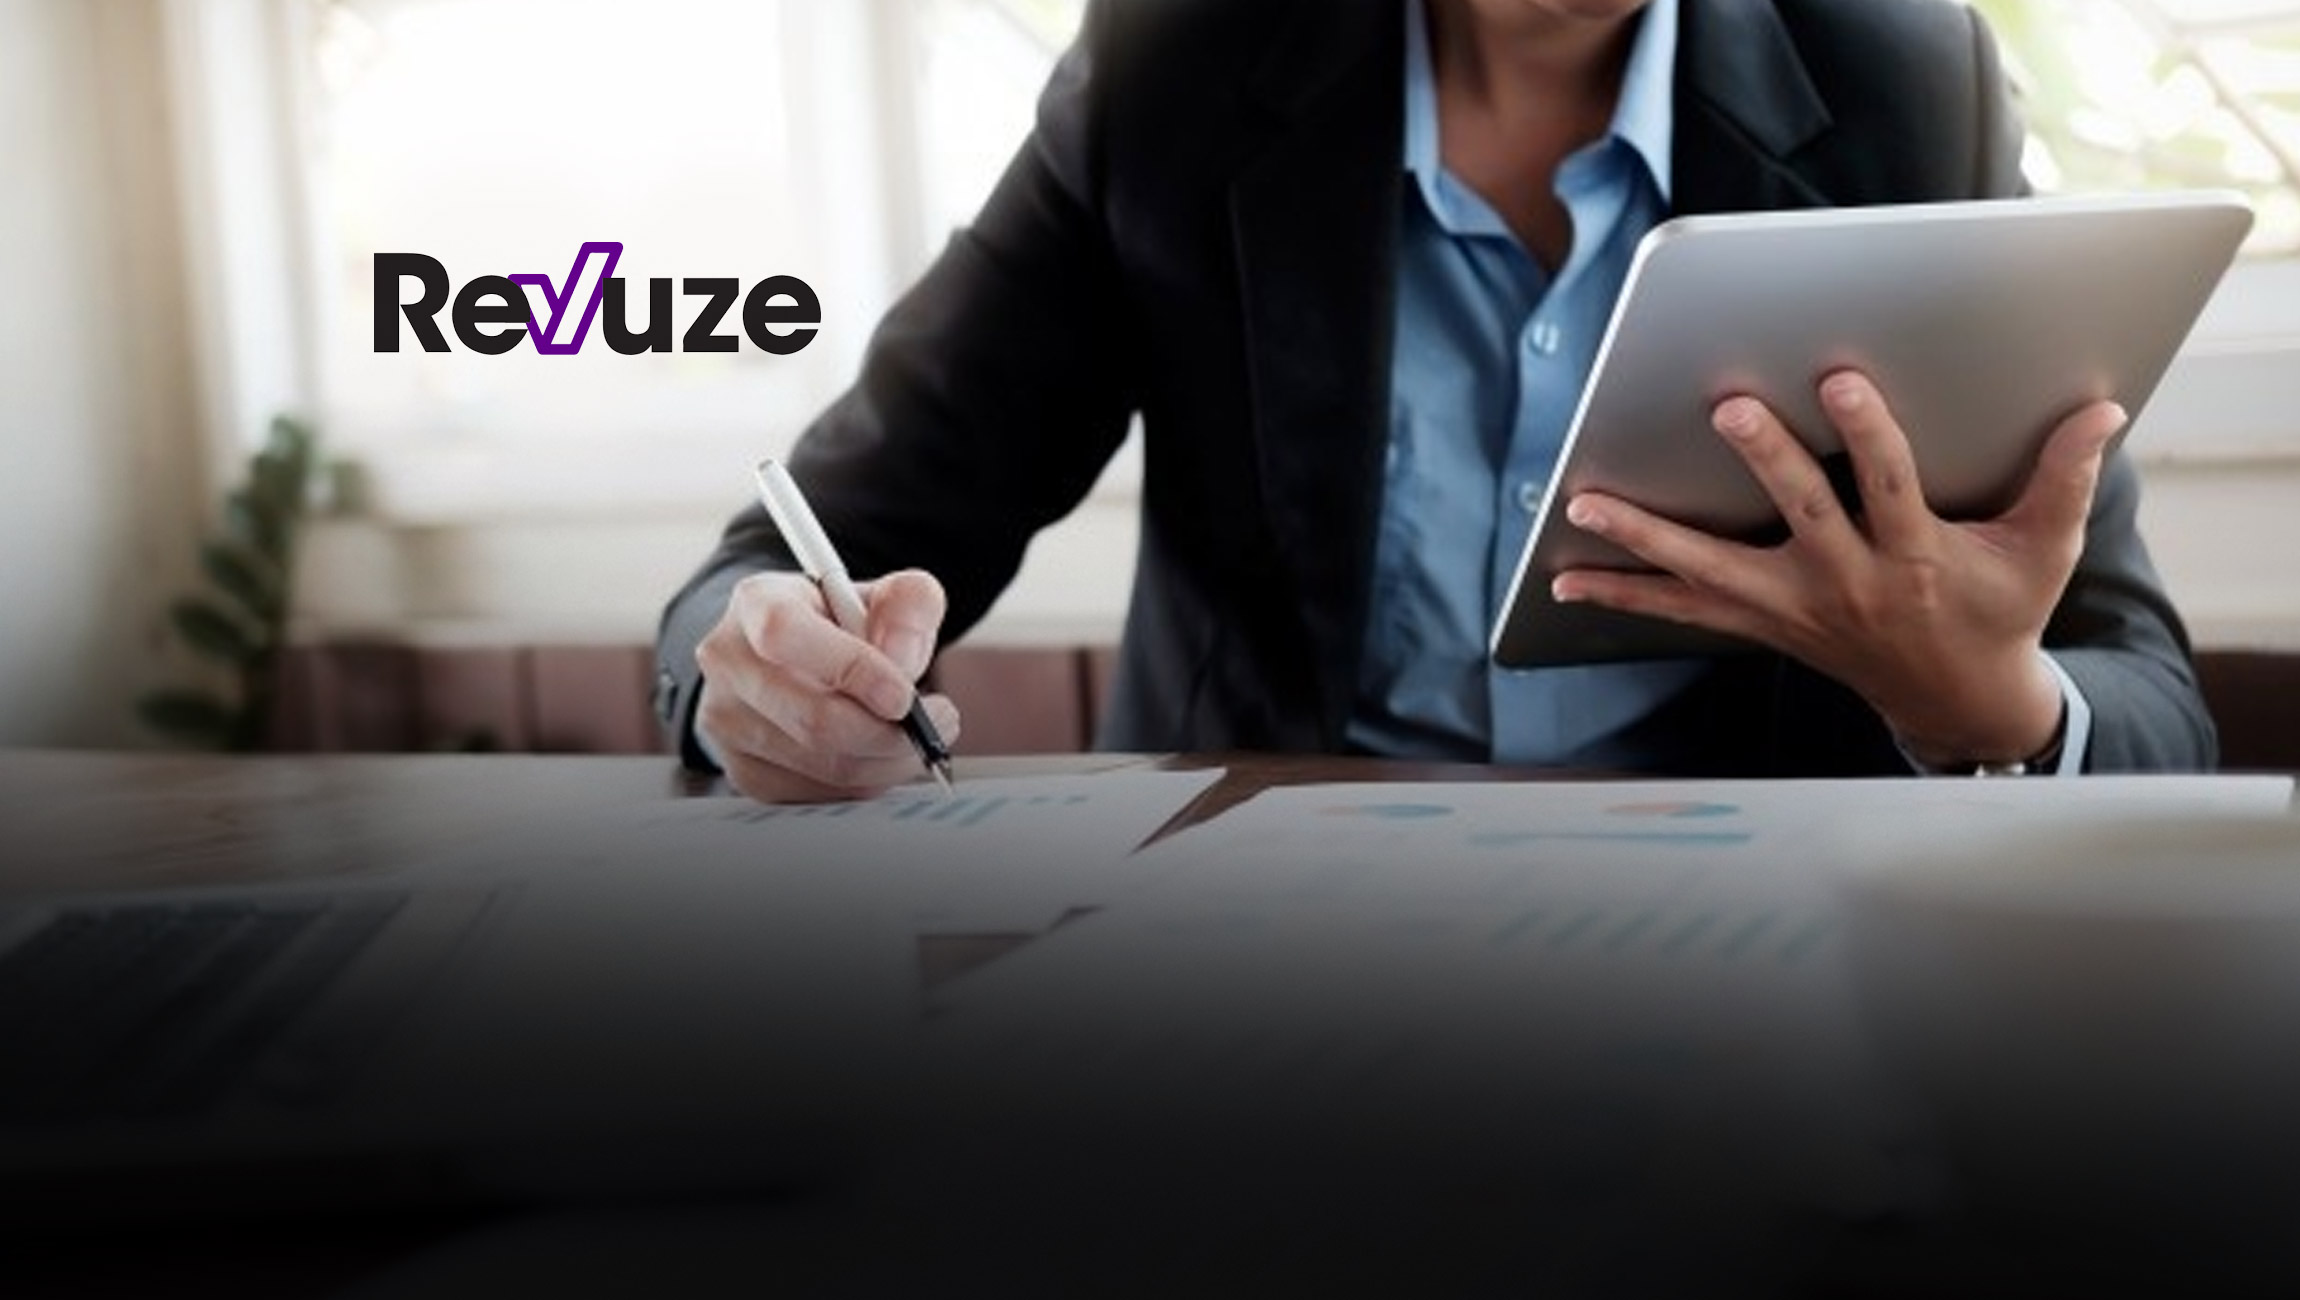 New Product Listing Optimization Tool For Marketplace Rankings By Revuze